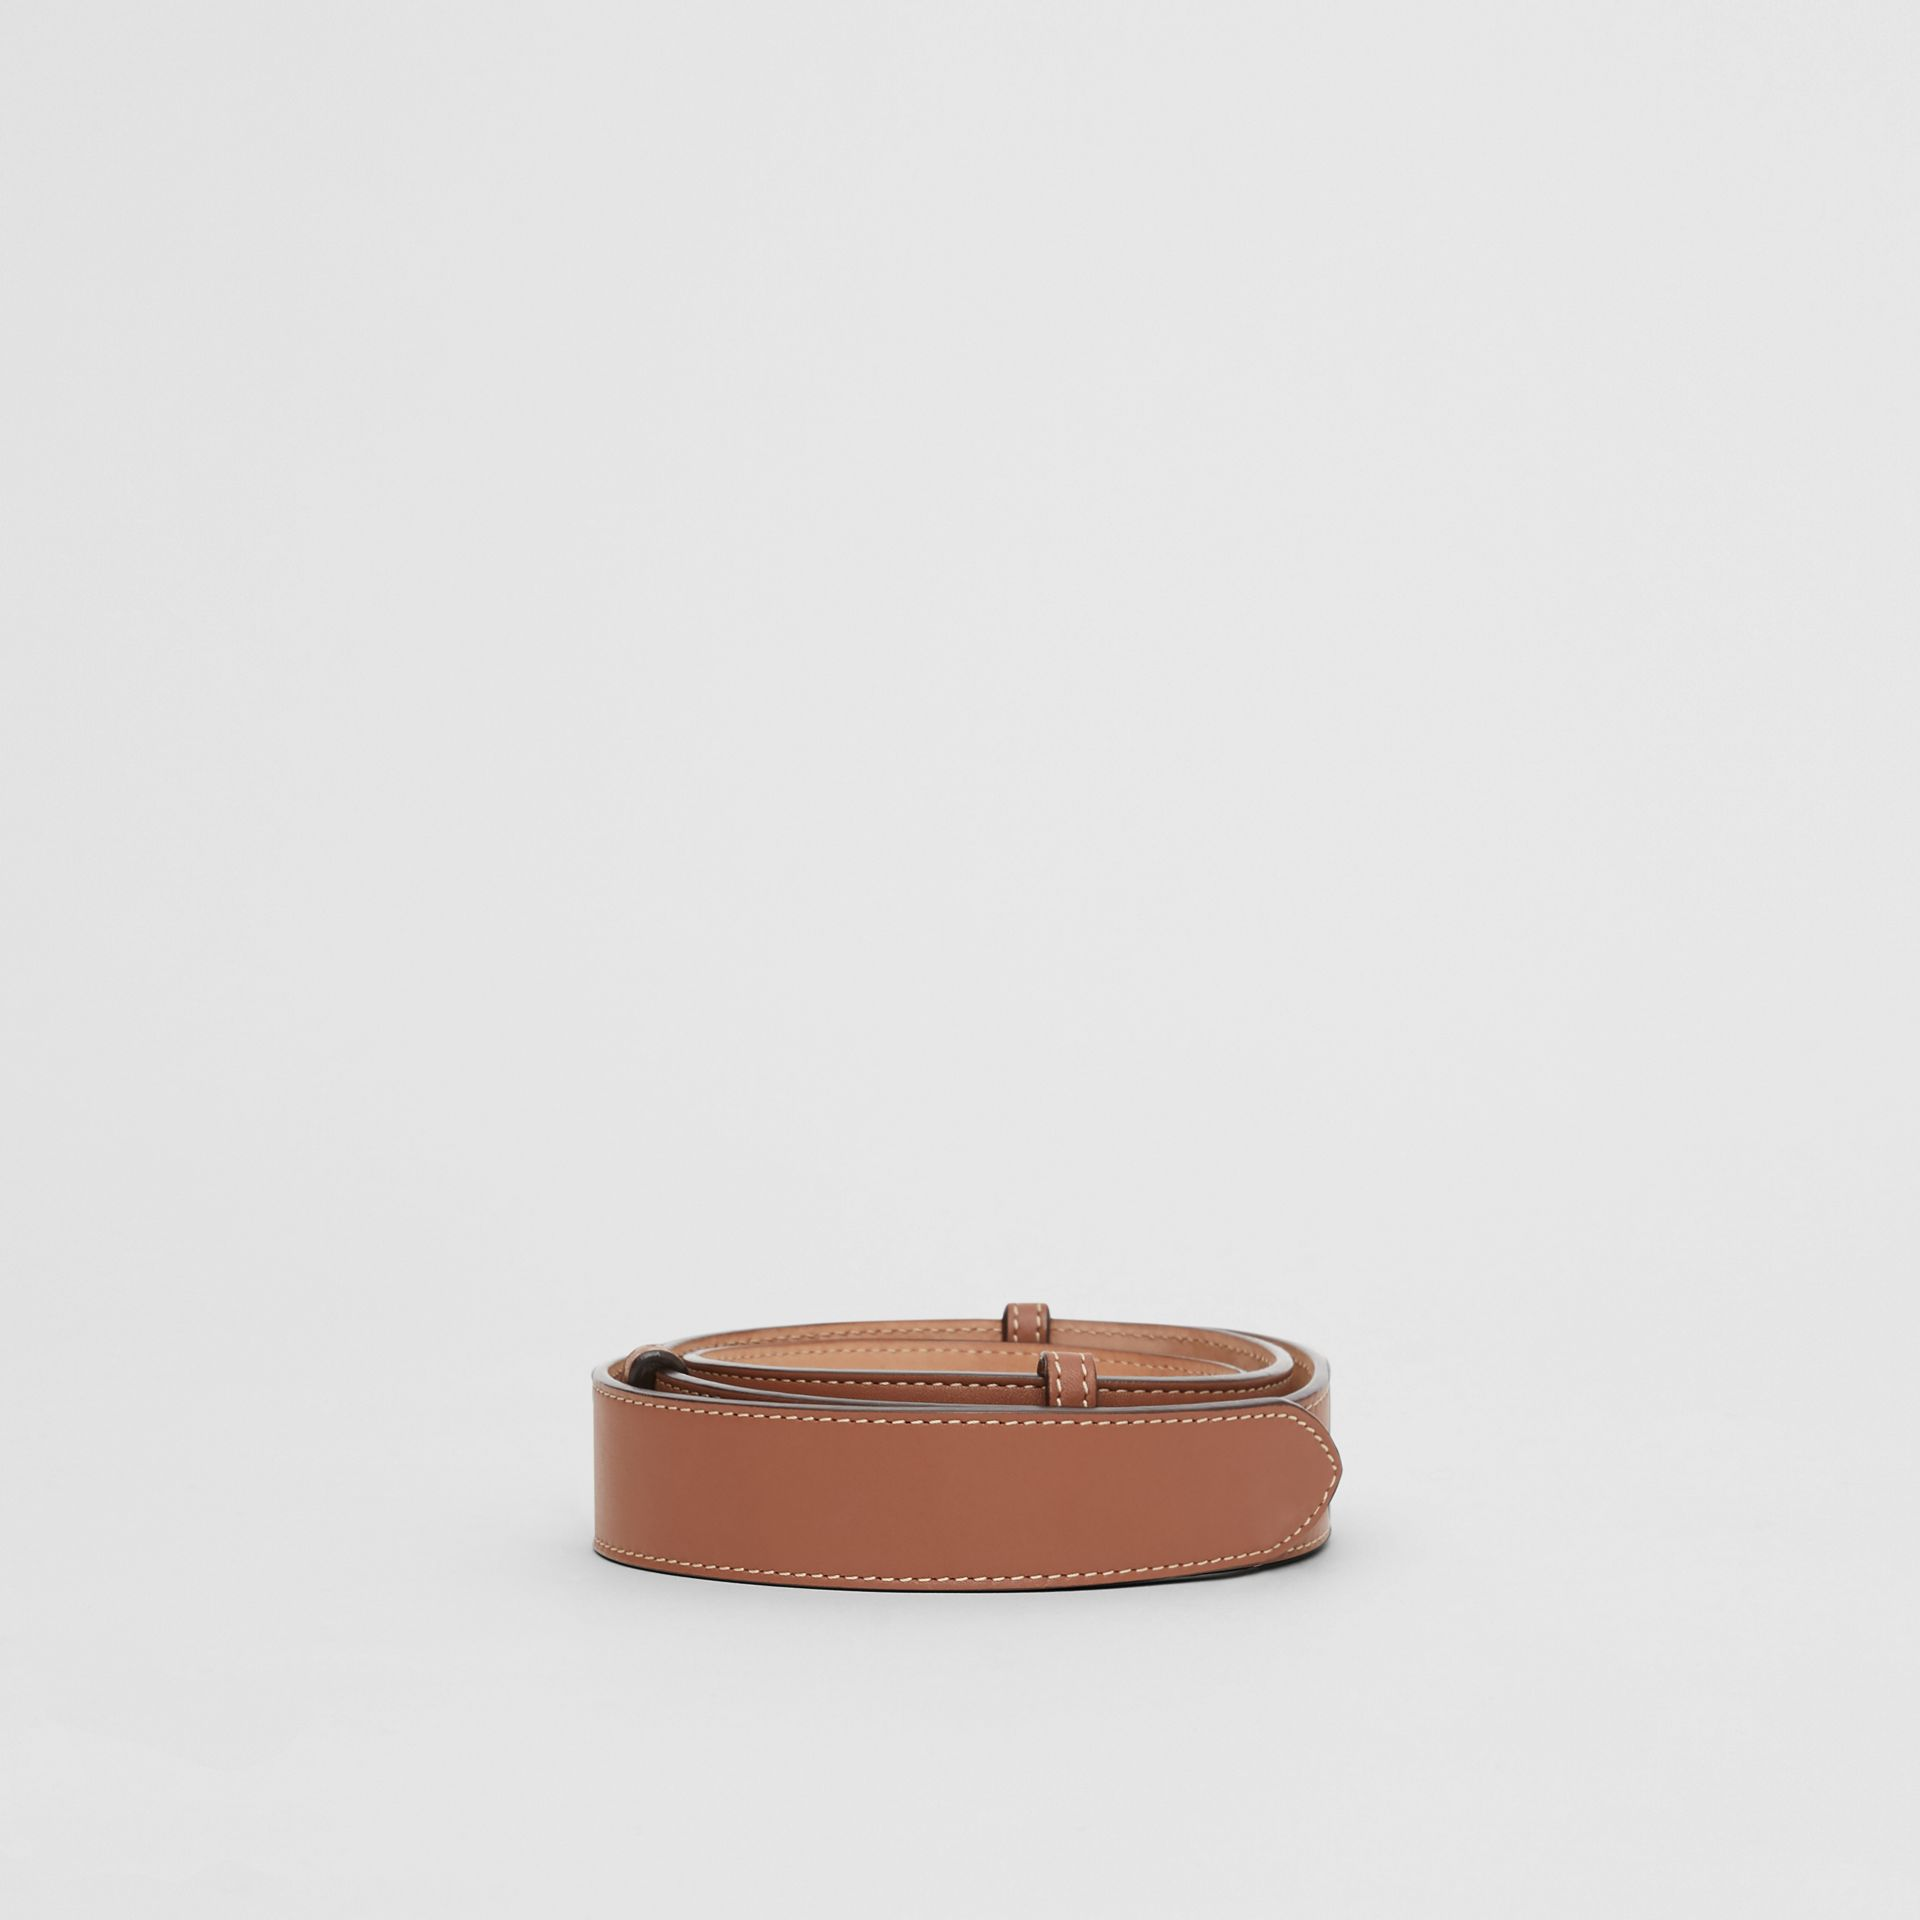 Triple Stud Leather Belt in Malt Brown - Women | Burberry Singapore - gallery image 4